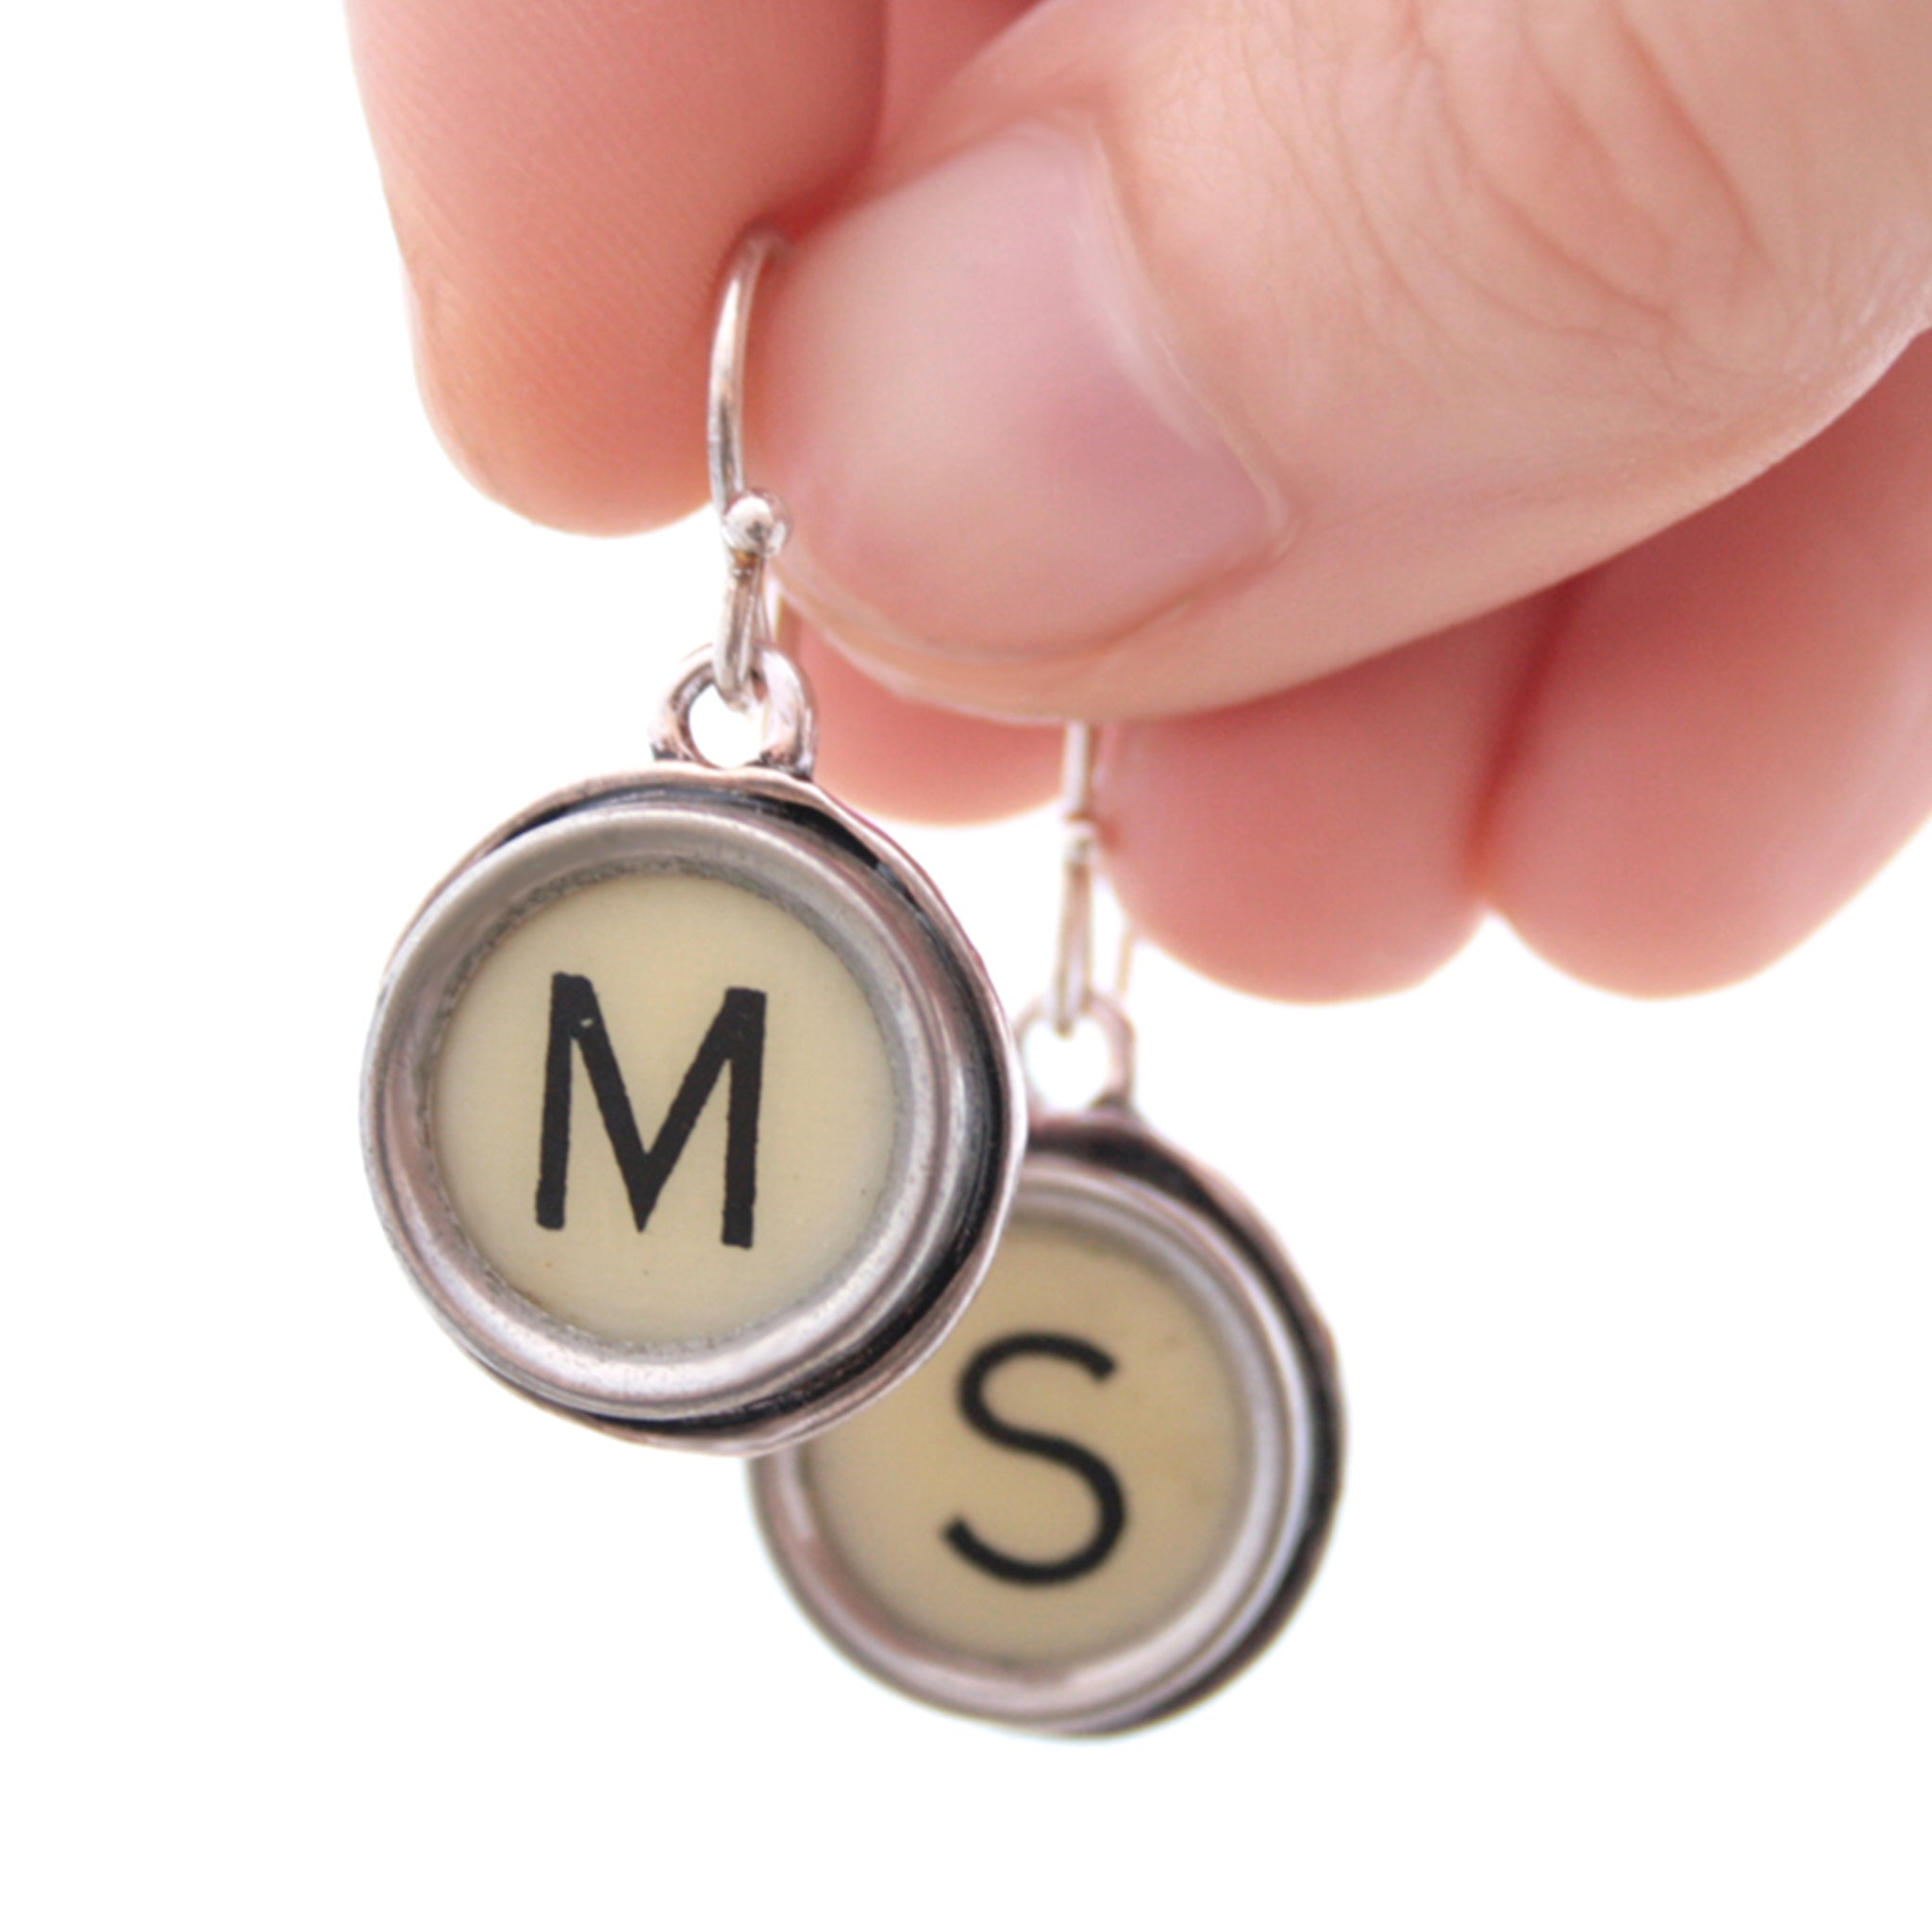 M and S Ivory Typewriter keys turned into initial earrings hold in hand